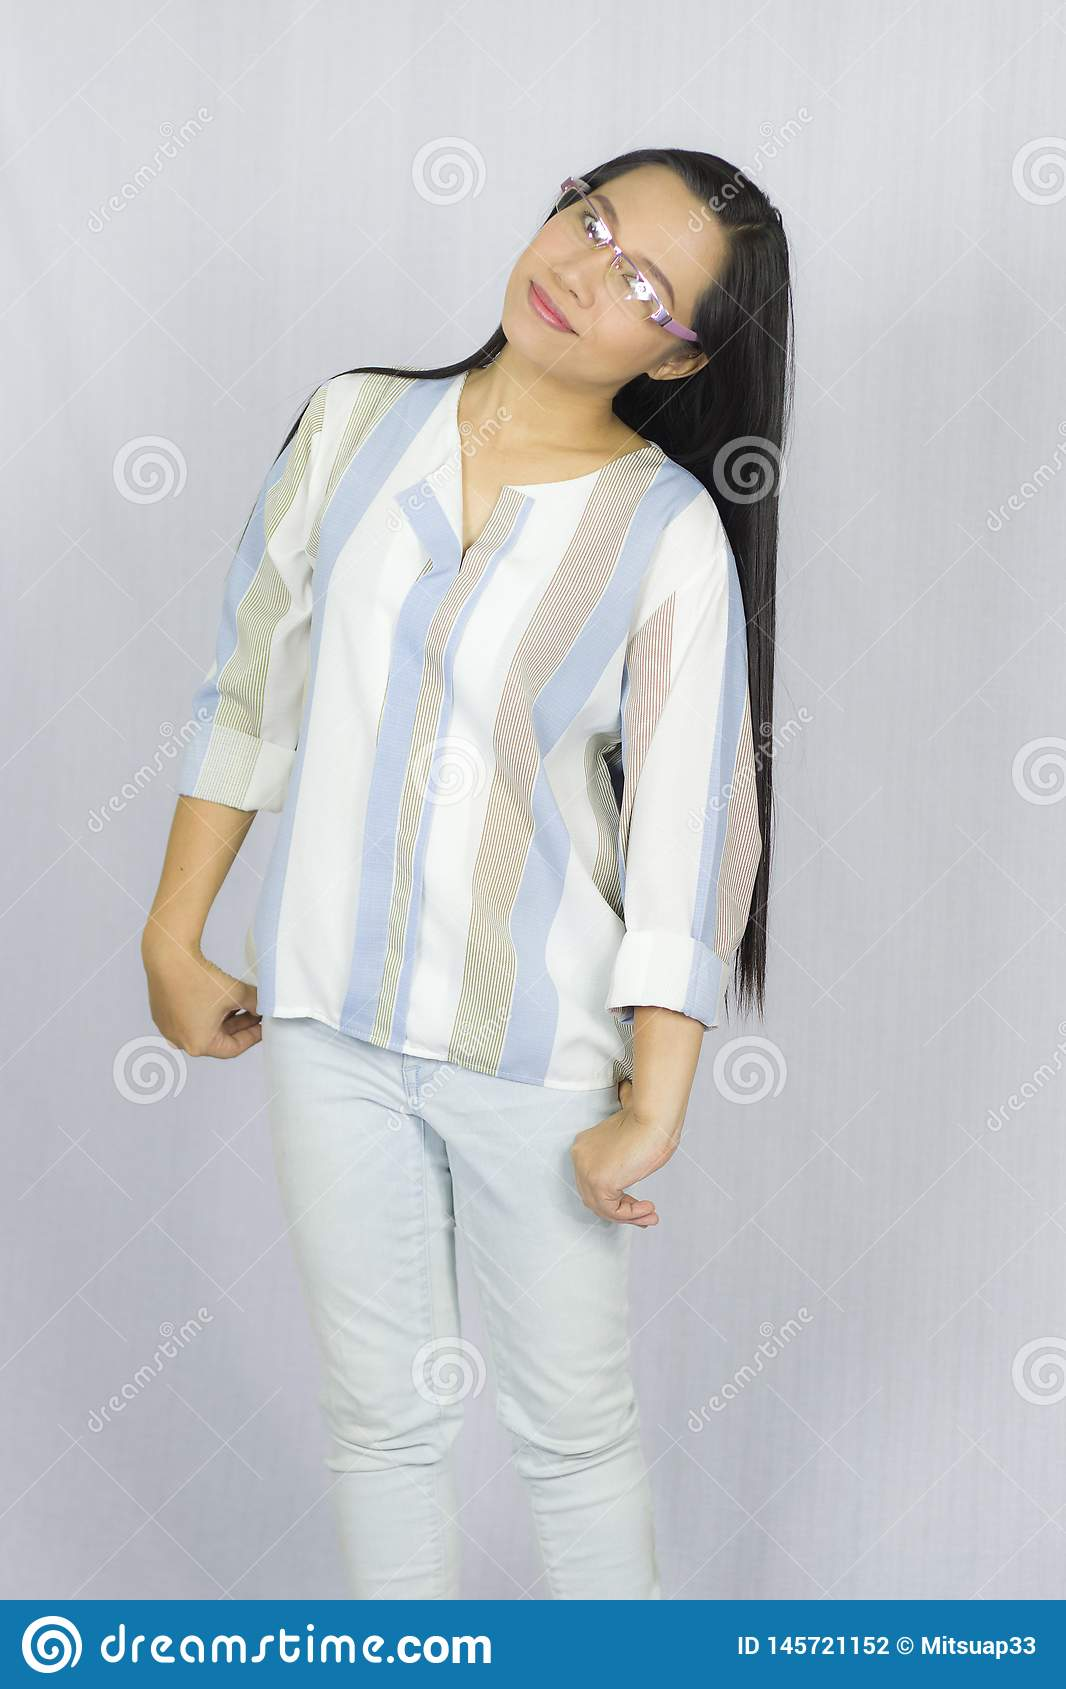 Funny Asian woman in glasses posing happy smile  Isolated on gray background